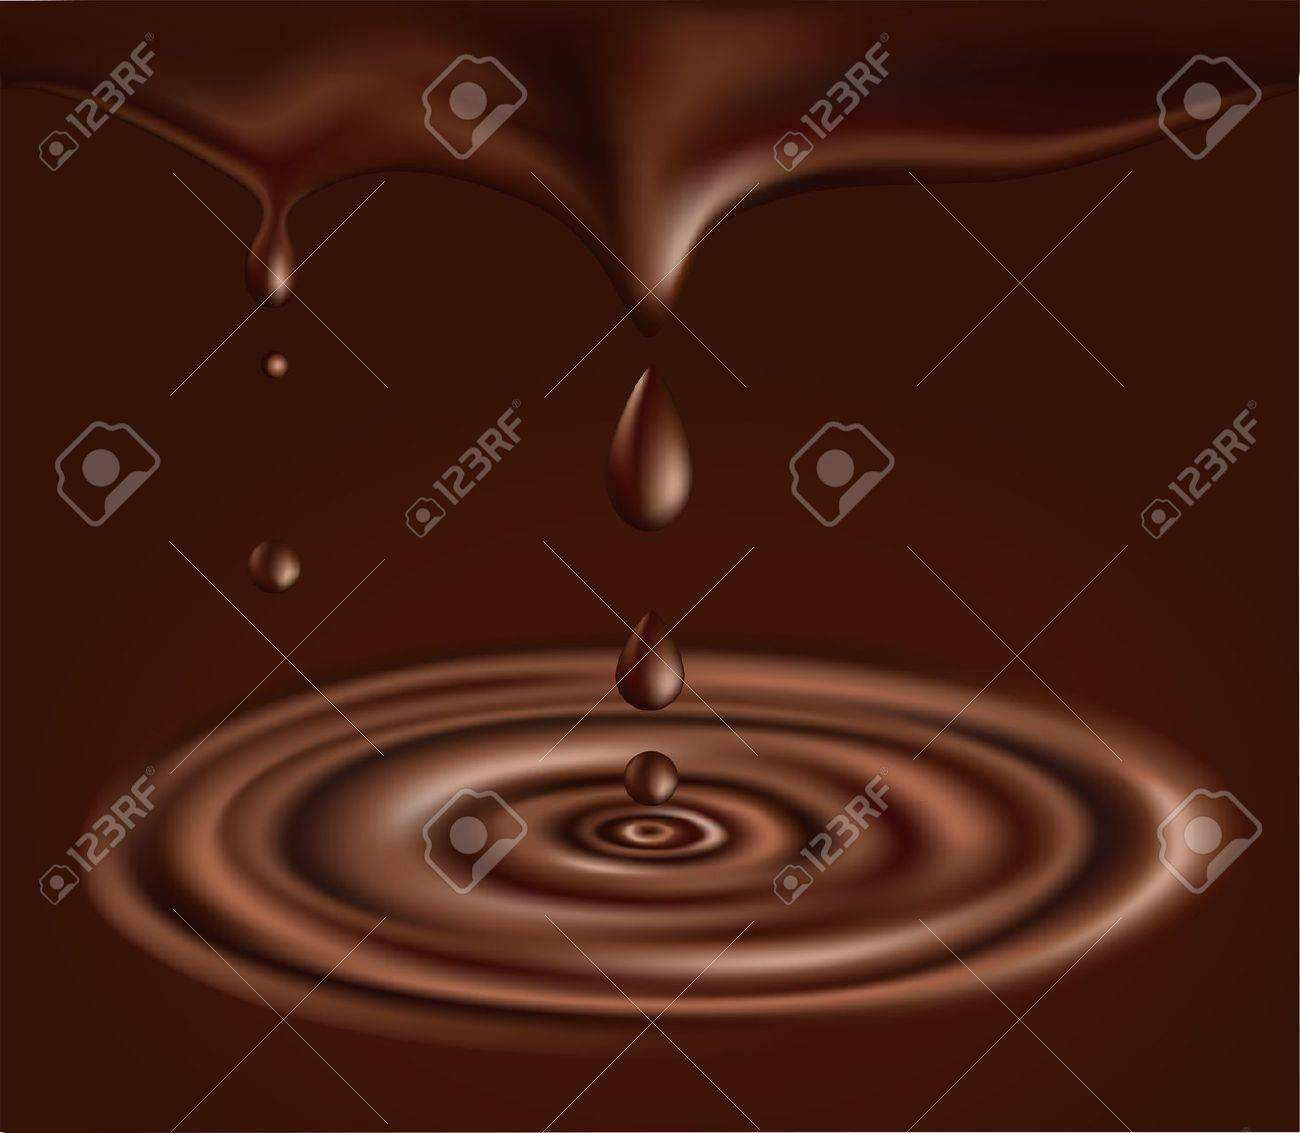 4,760 Chocolate Drop Stock Vector Illustration And Royalty Free ...